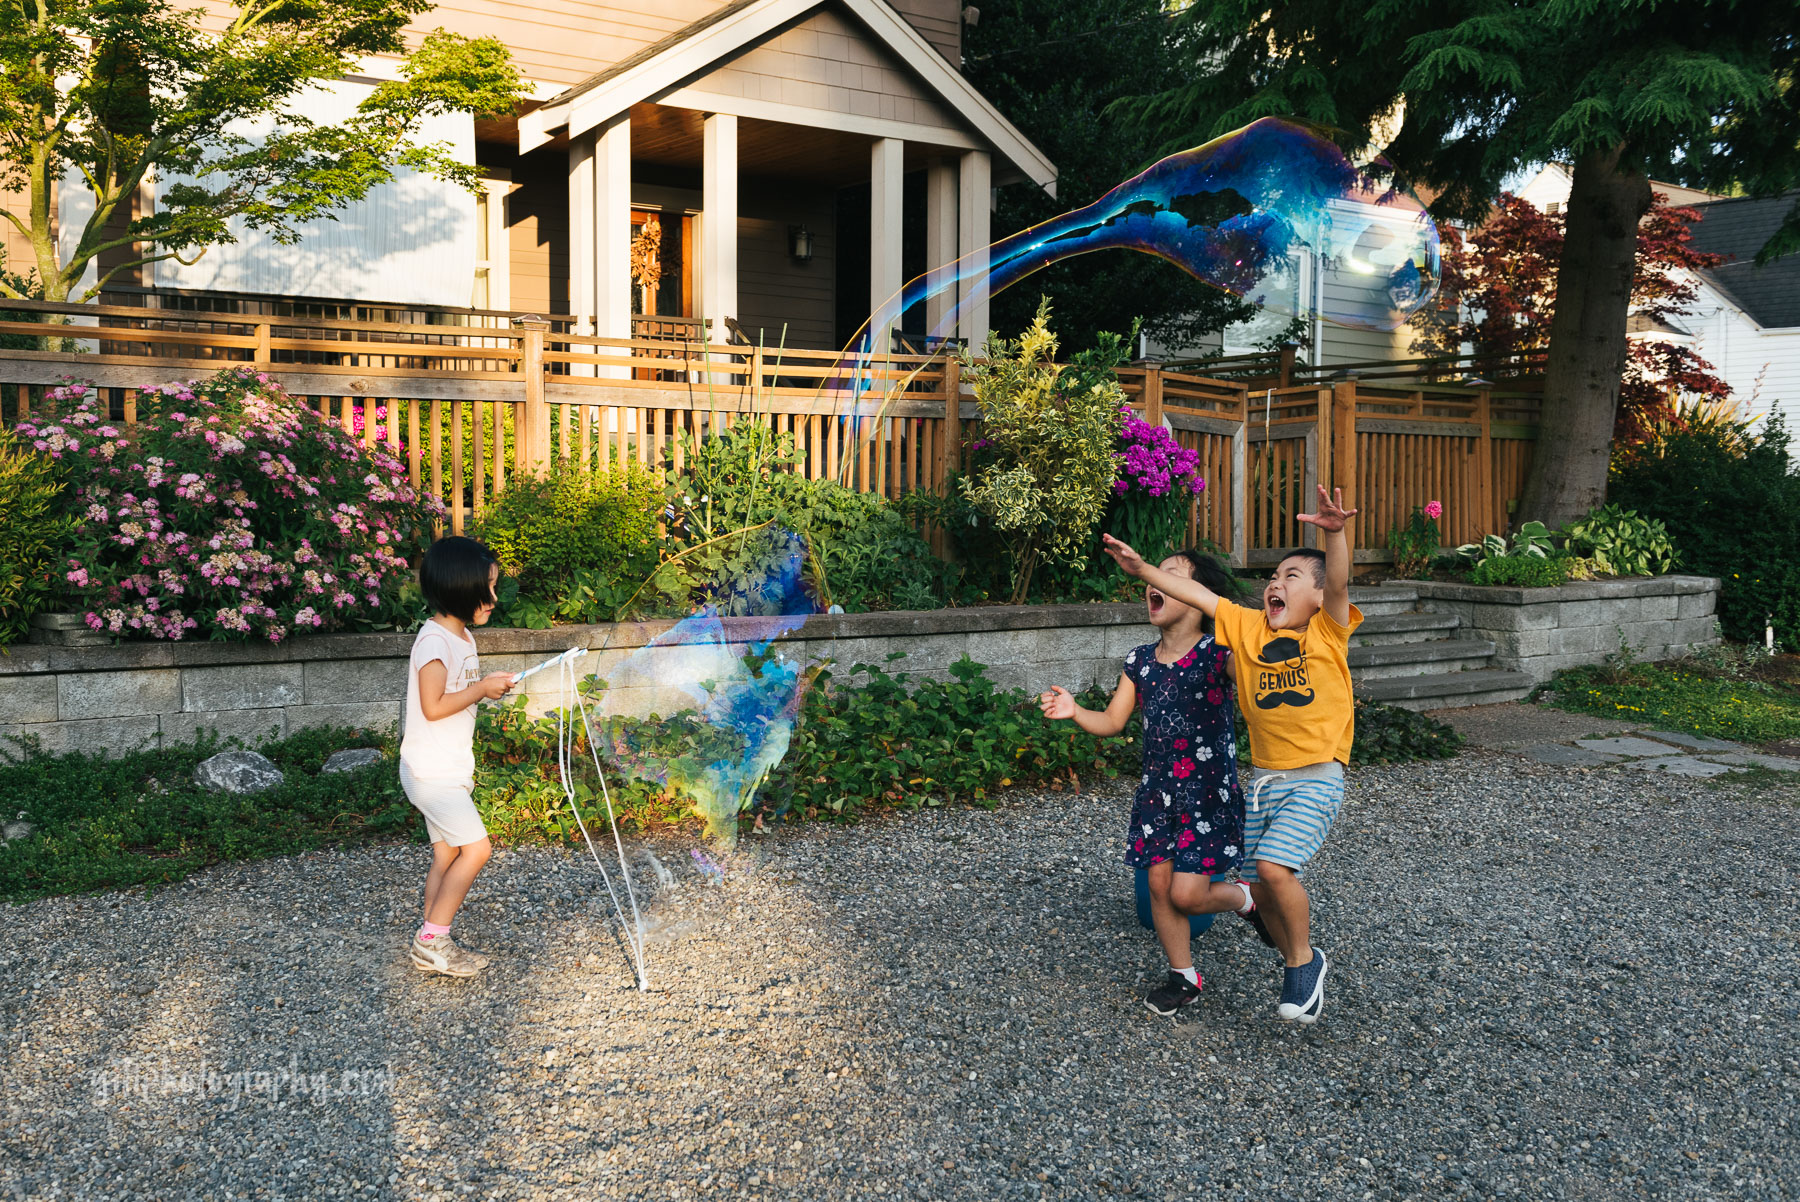 little girl making a giant bubble that her brother and sister are trying to pop